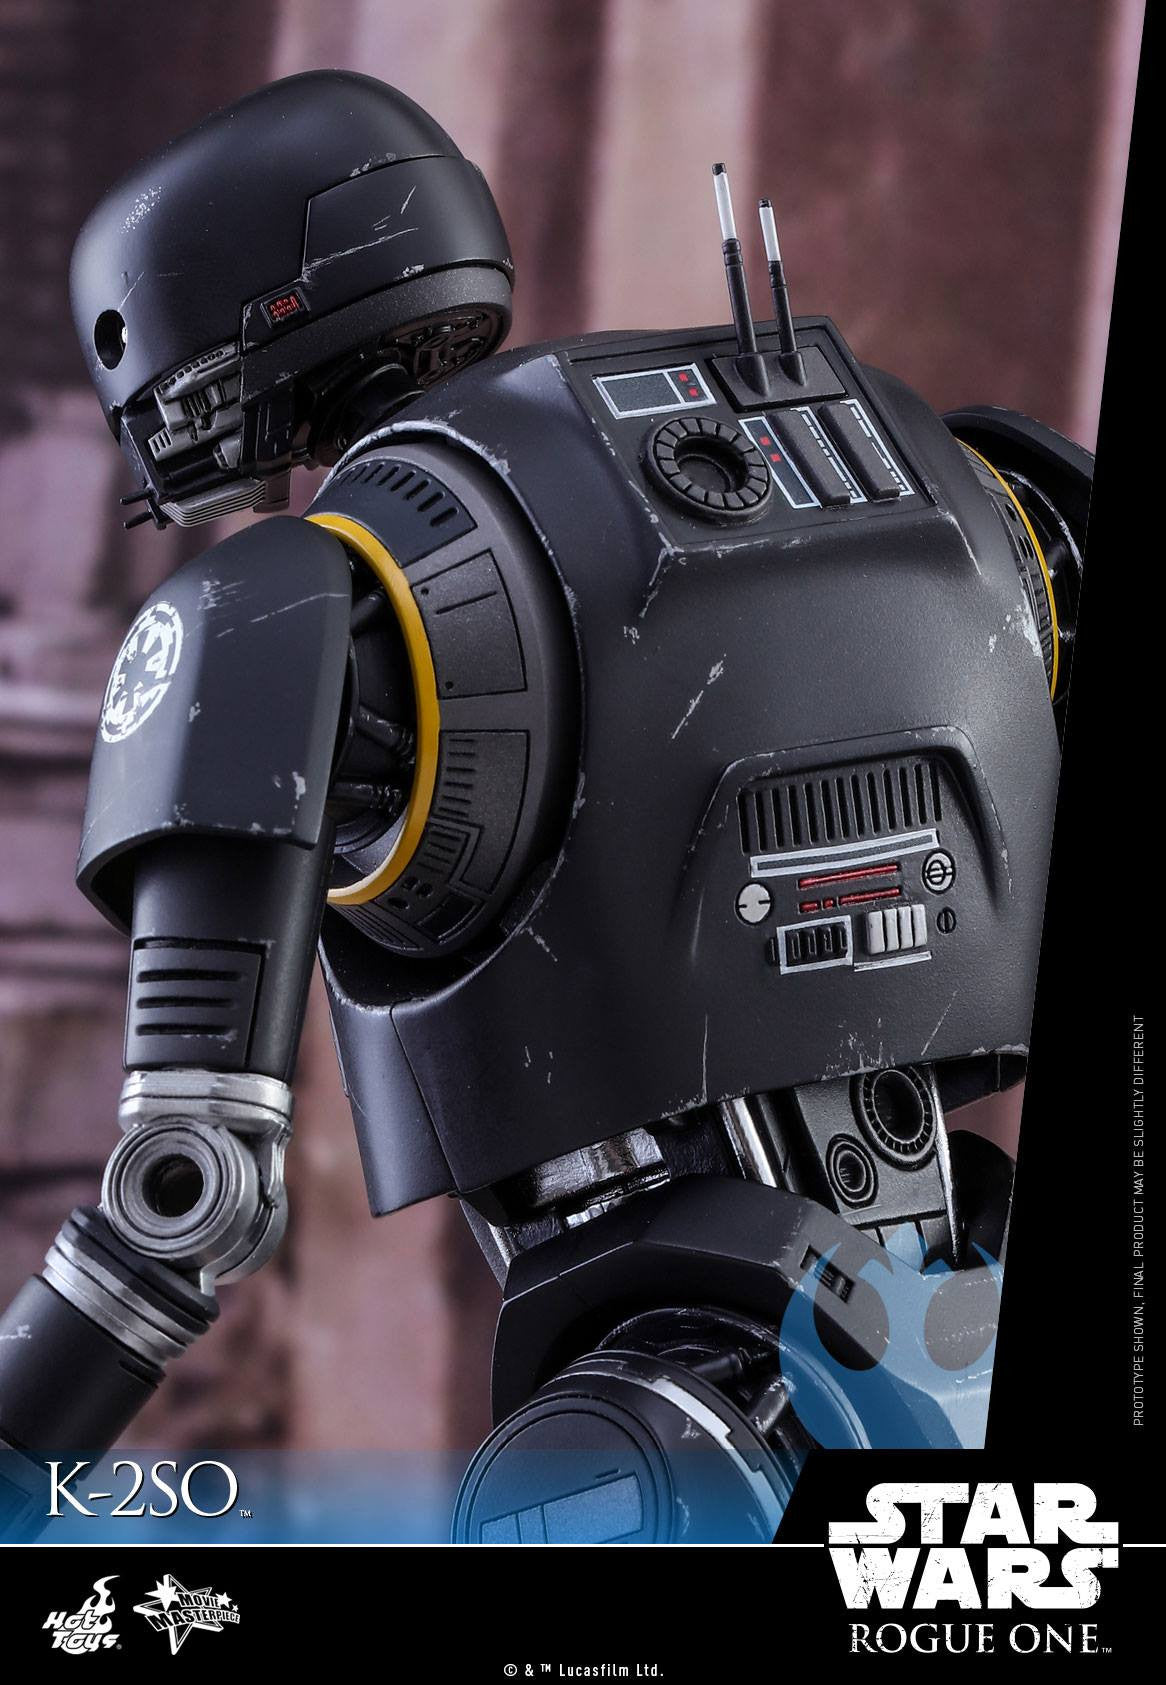 Hot Toys - MMS406 - Rogue One: A Star Wars Story - K-2SO - Marvelous Toys - 16